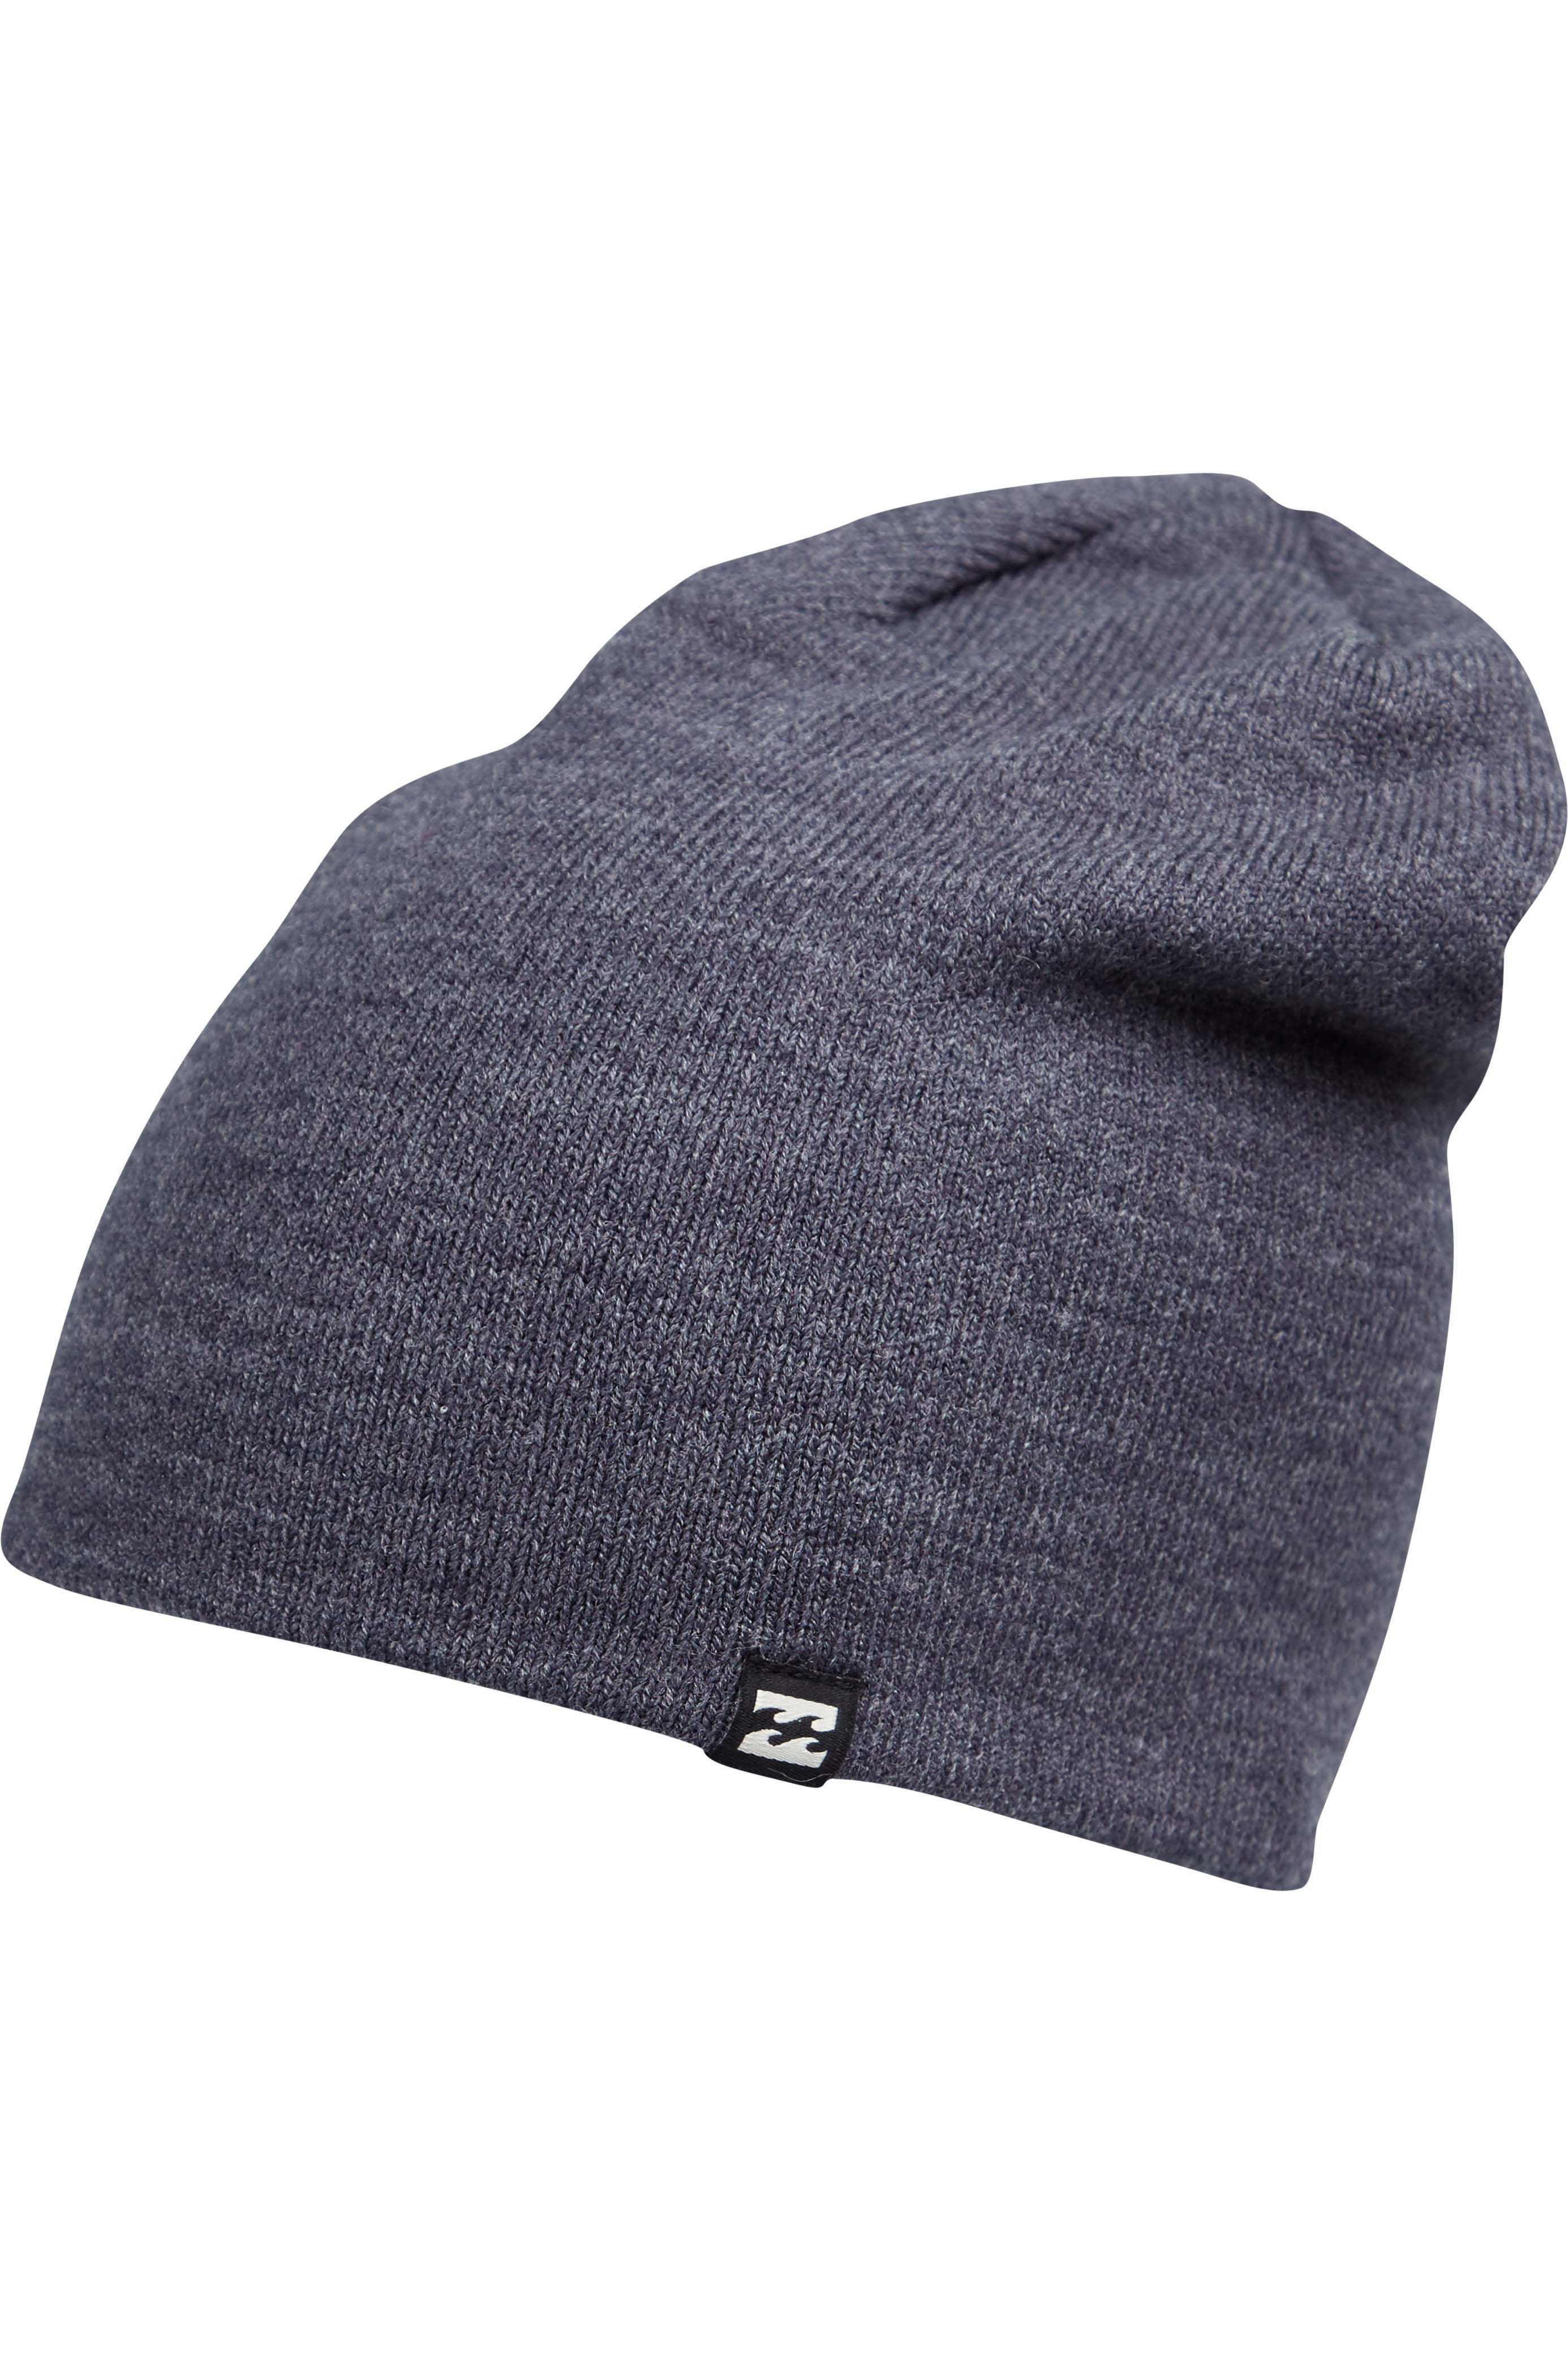 Gorro Billabong ALL DAY Navy Heather